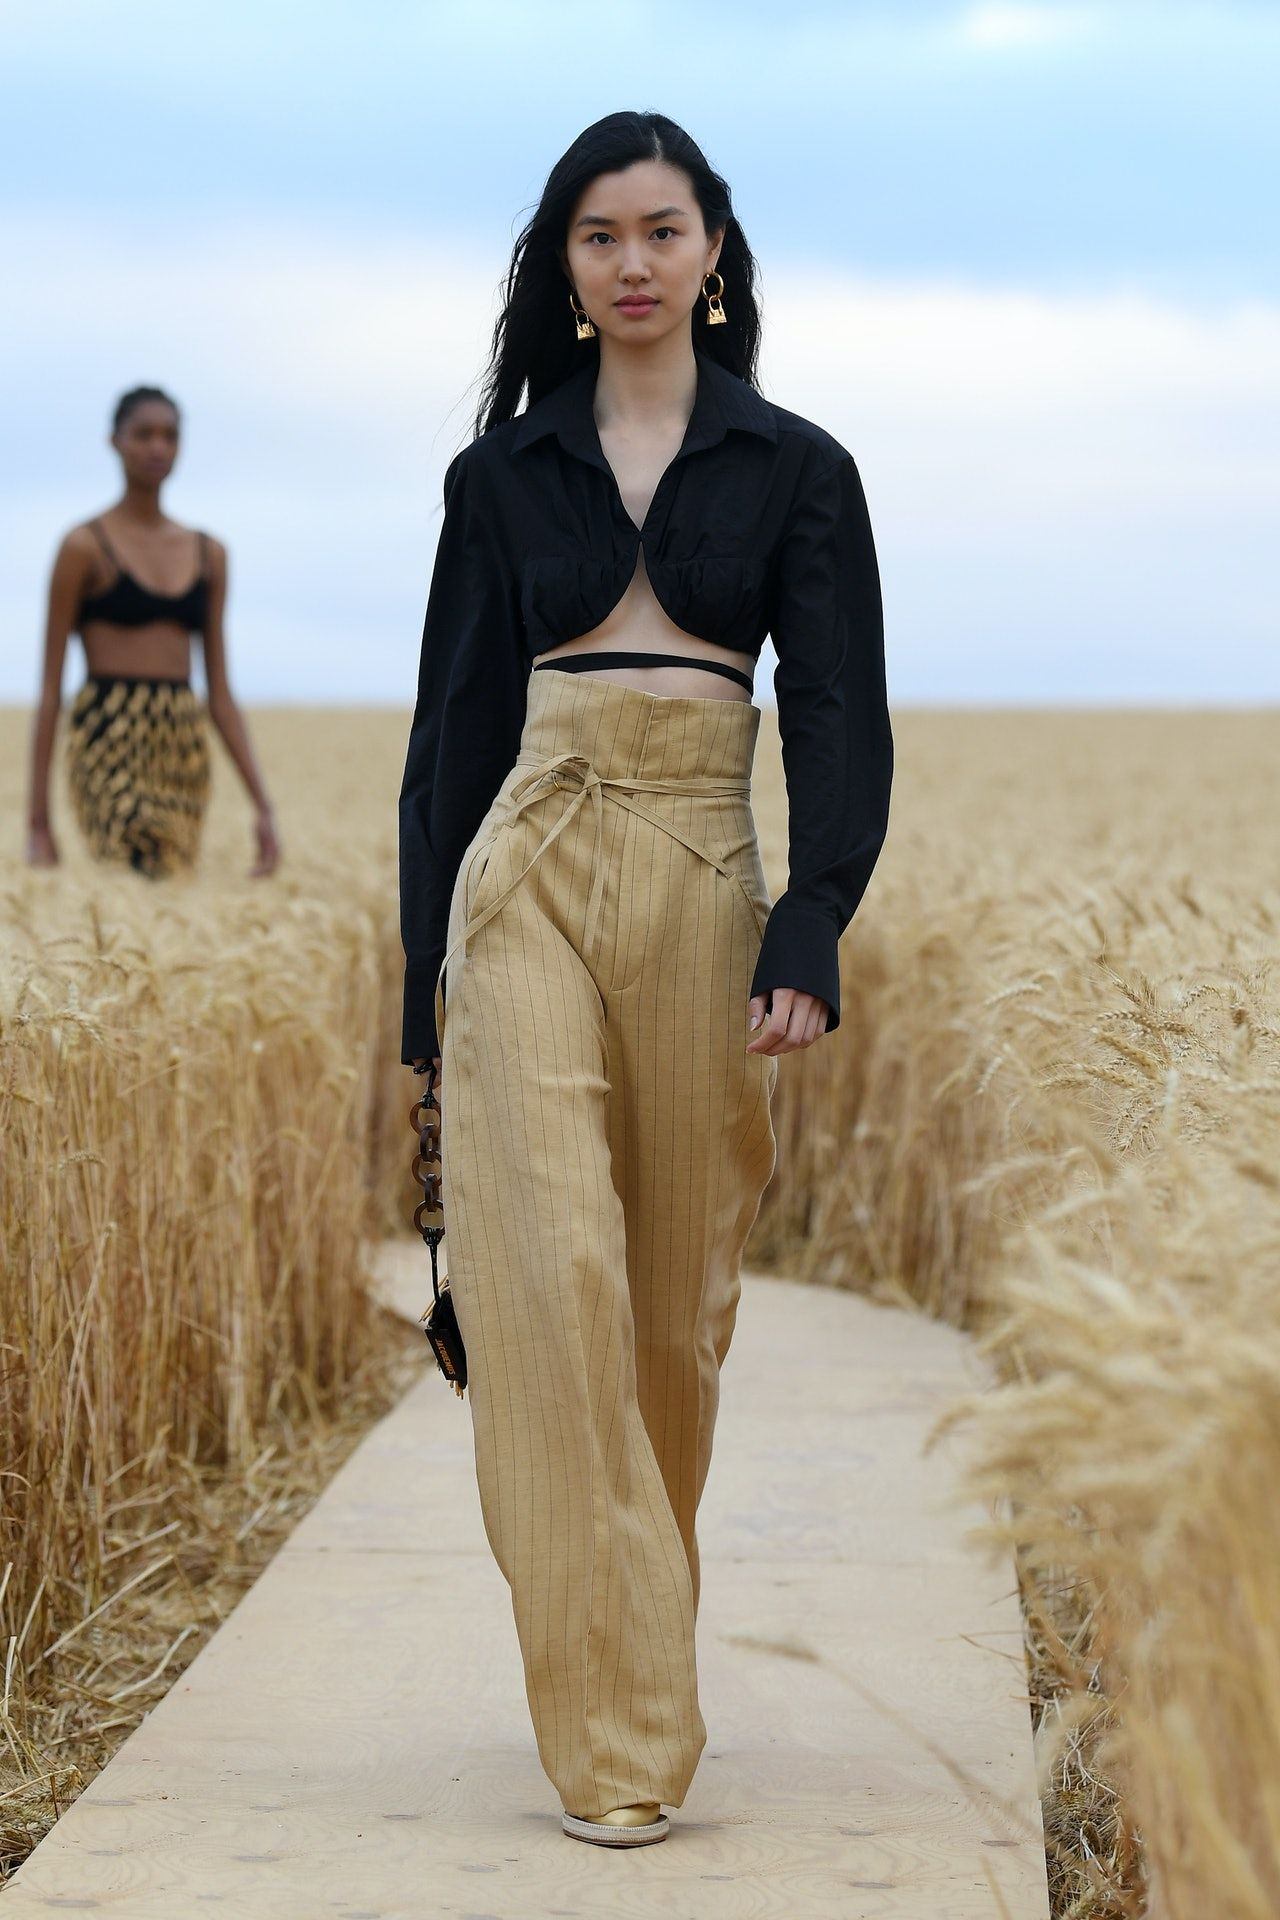 Jacquemus spring 2021 collection will be all over your